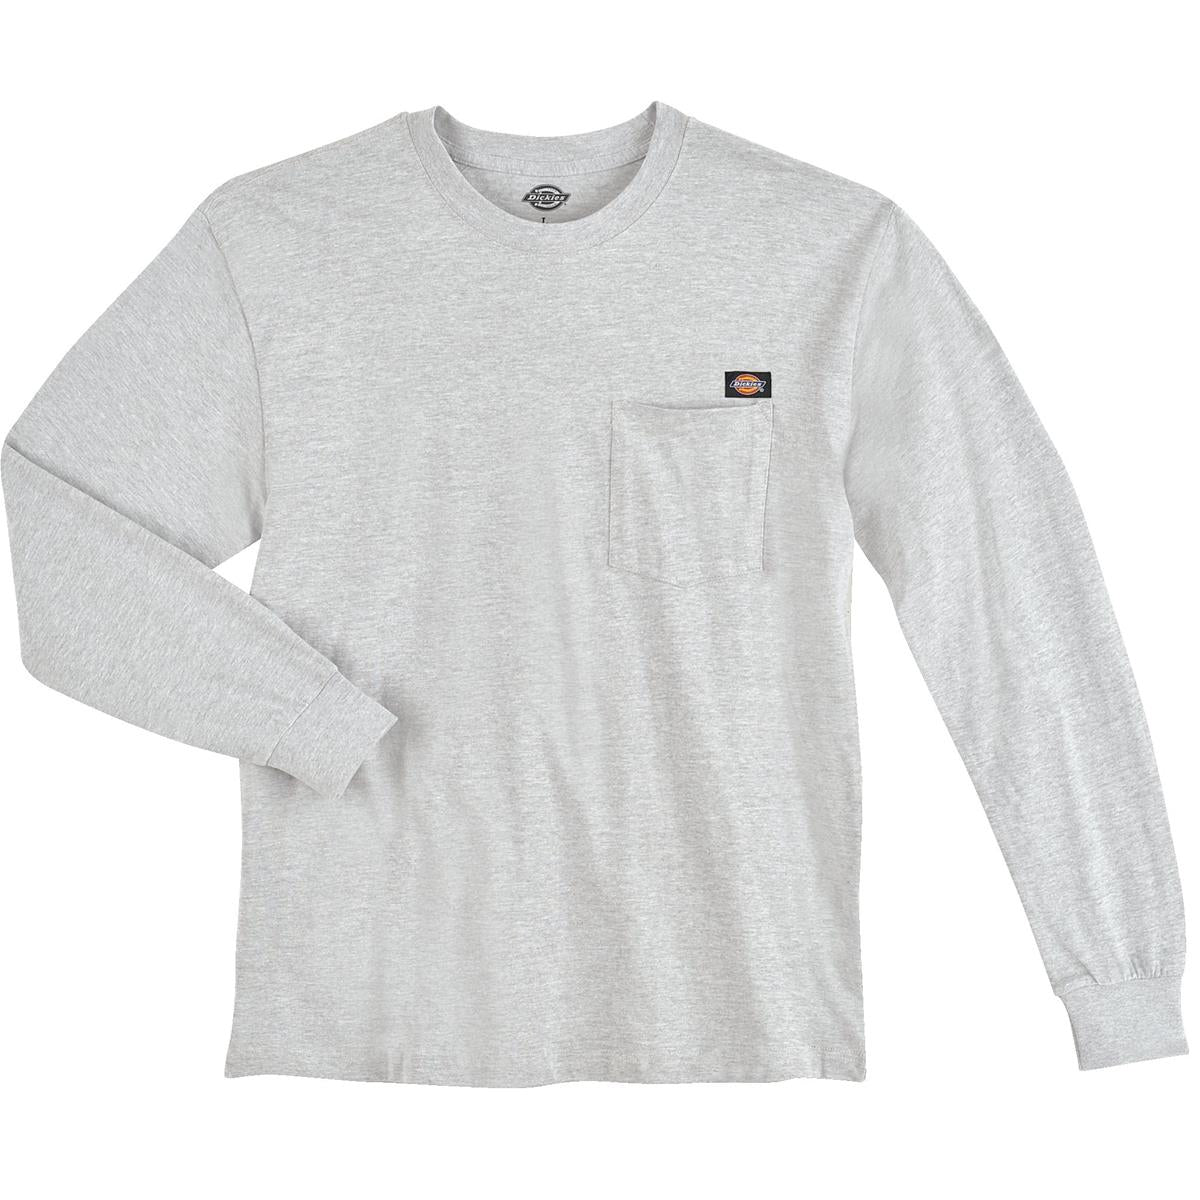 Dickies Pocket T-shirt